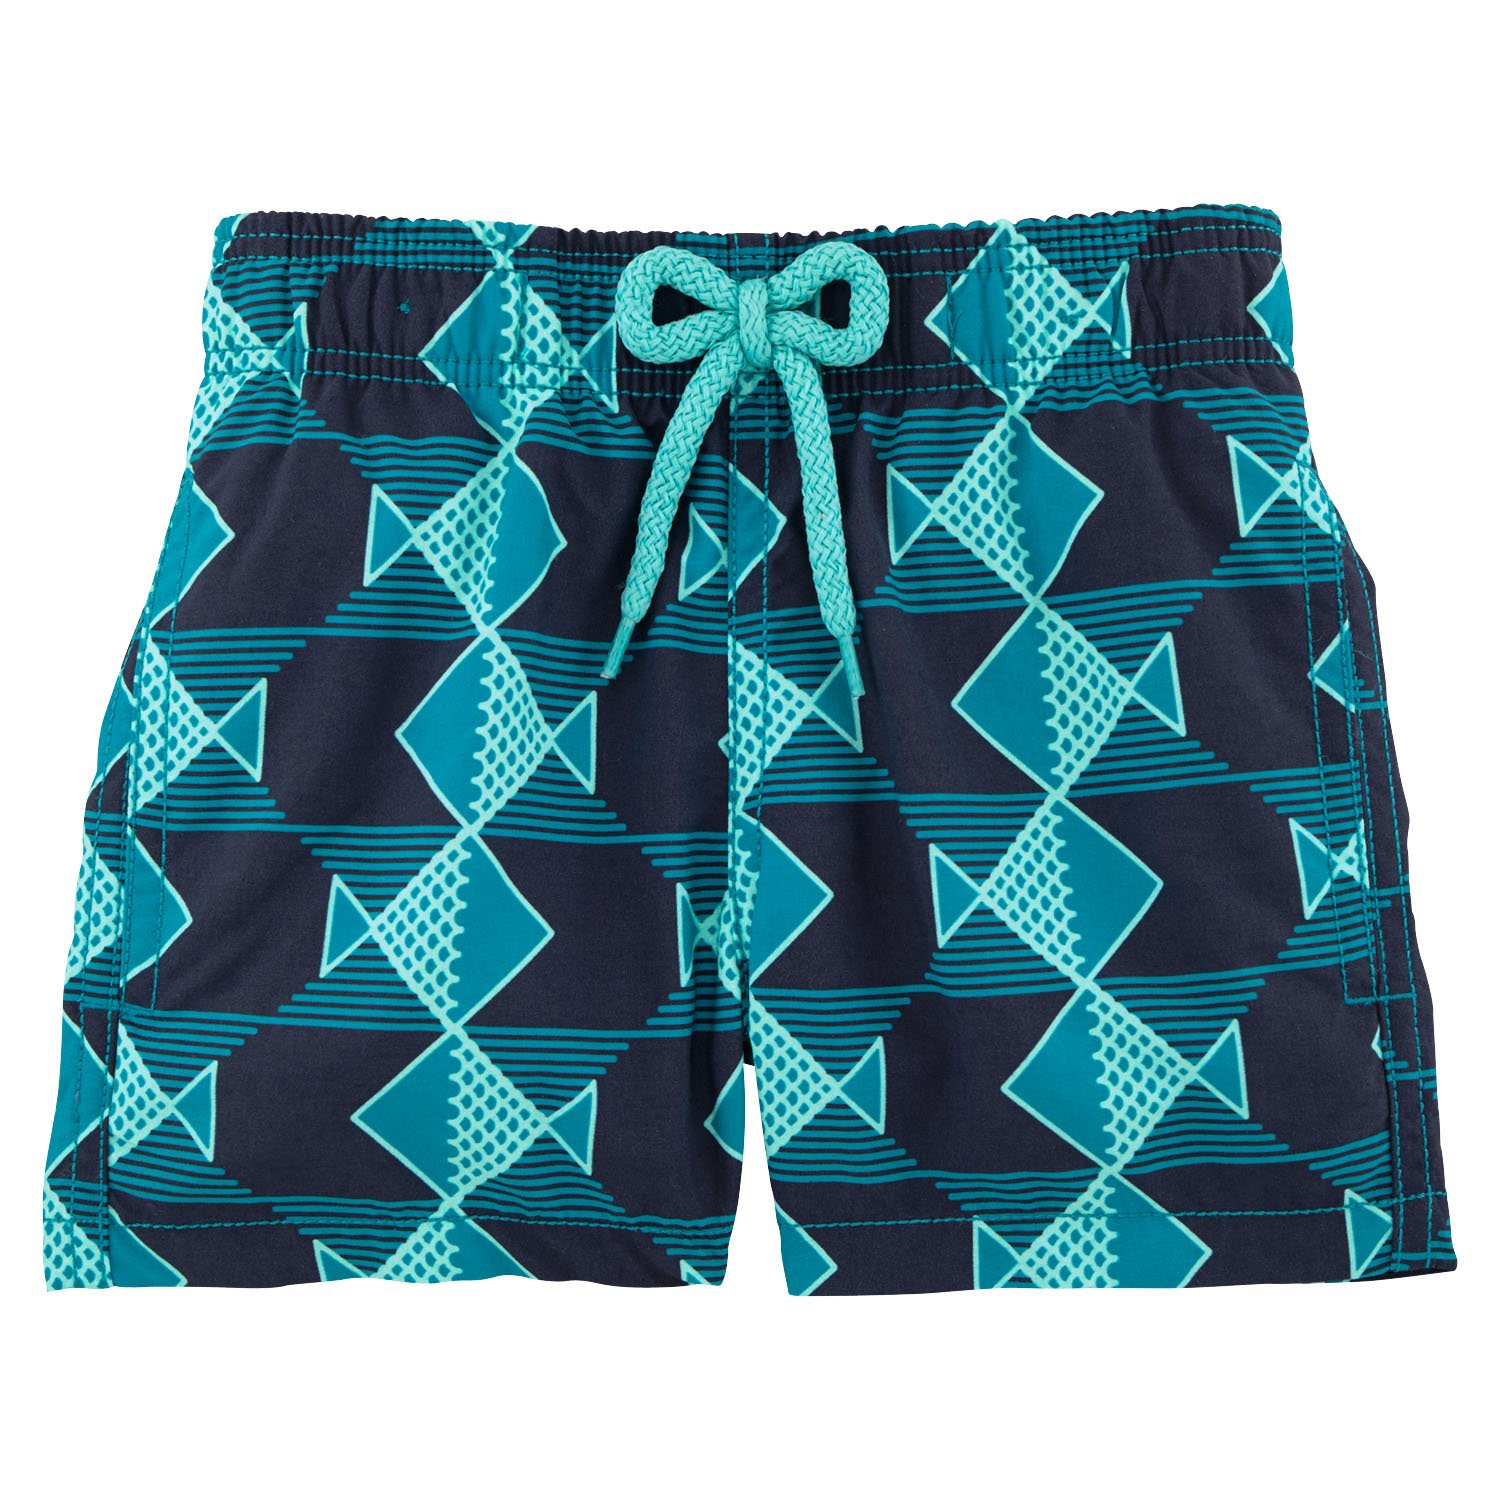 Vilebrequin - Graphic Fishes Boy Swimwear - Boys - 4 years - Prussian Blue by Vilebrequin